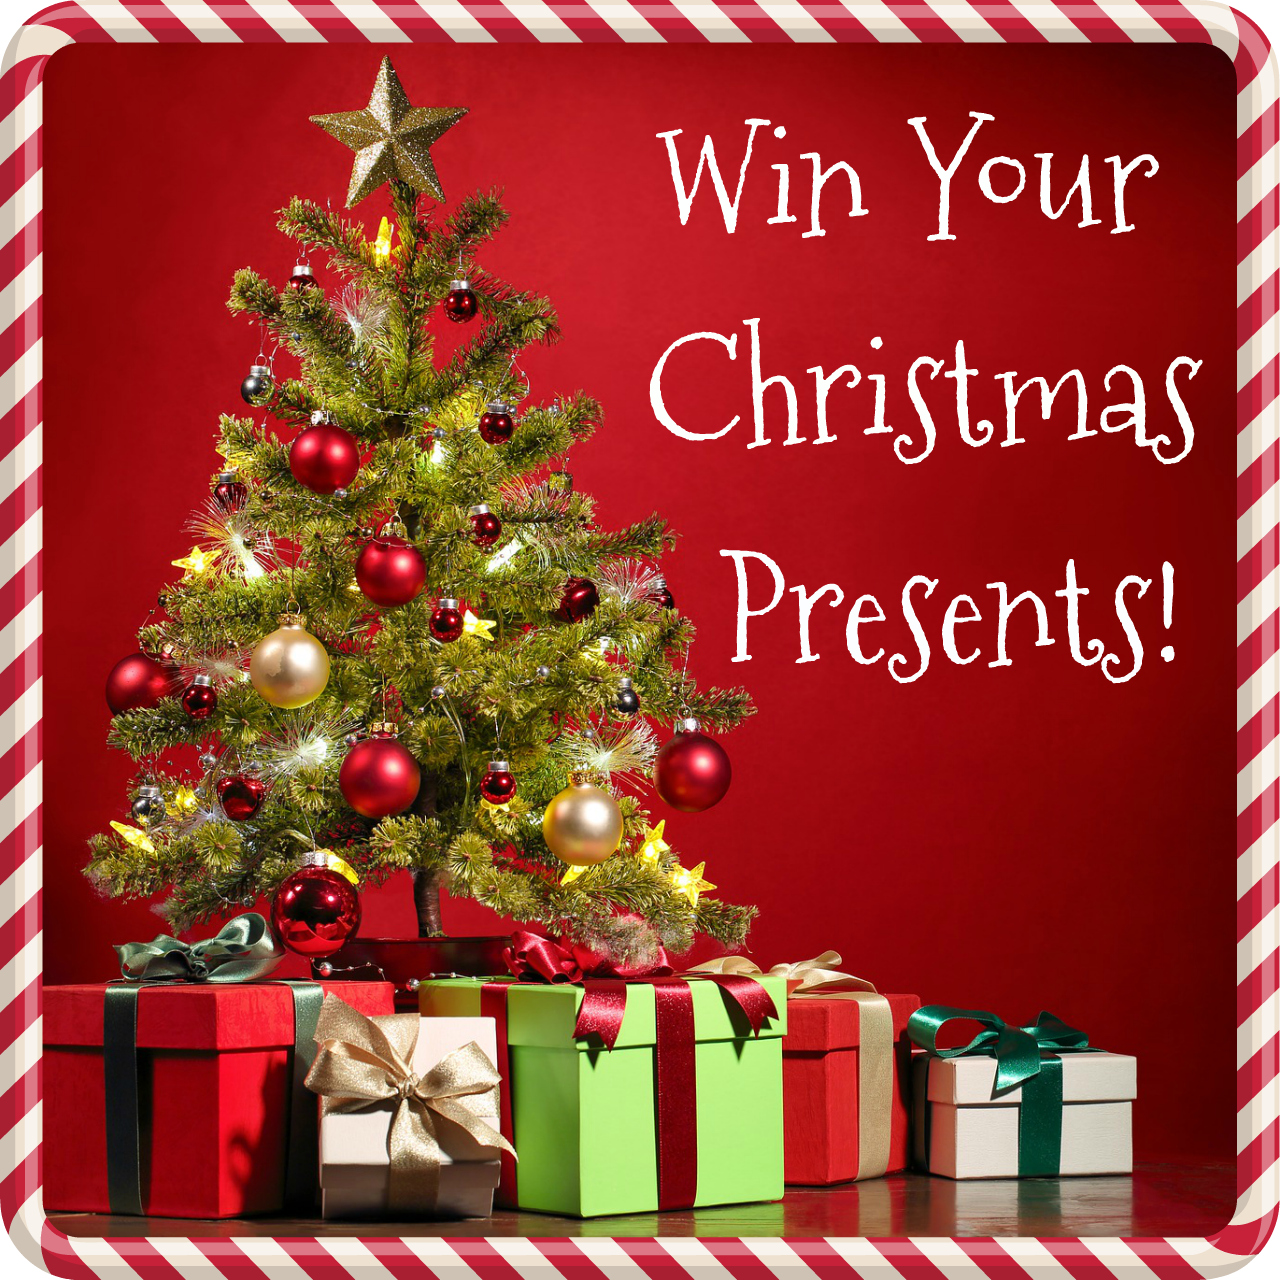 Christmas Presents.Win Your Christmas Presents With Our Huge Giveaway The